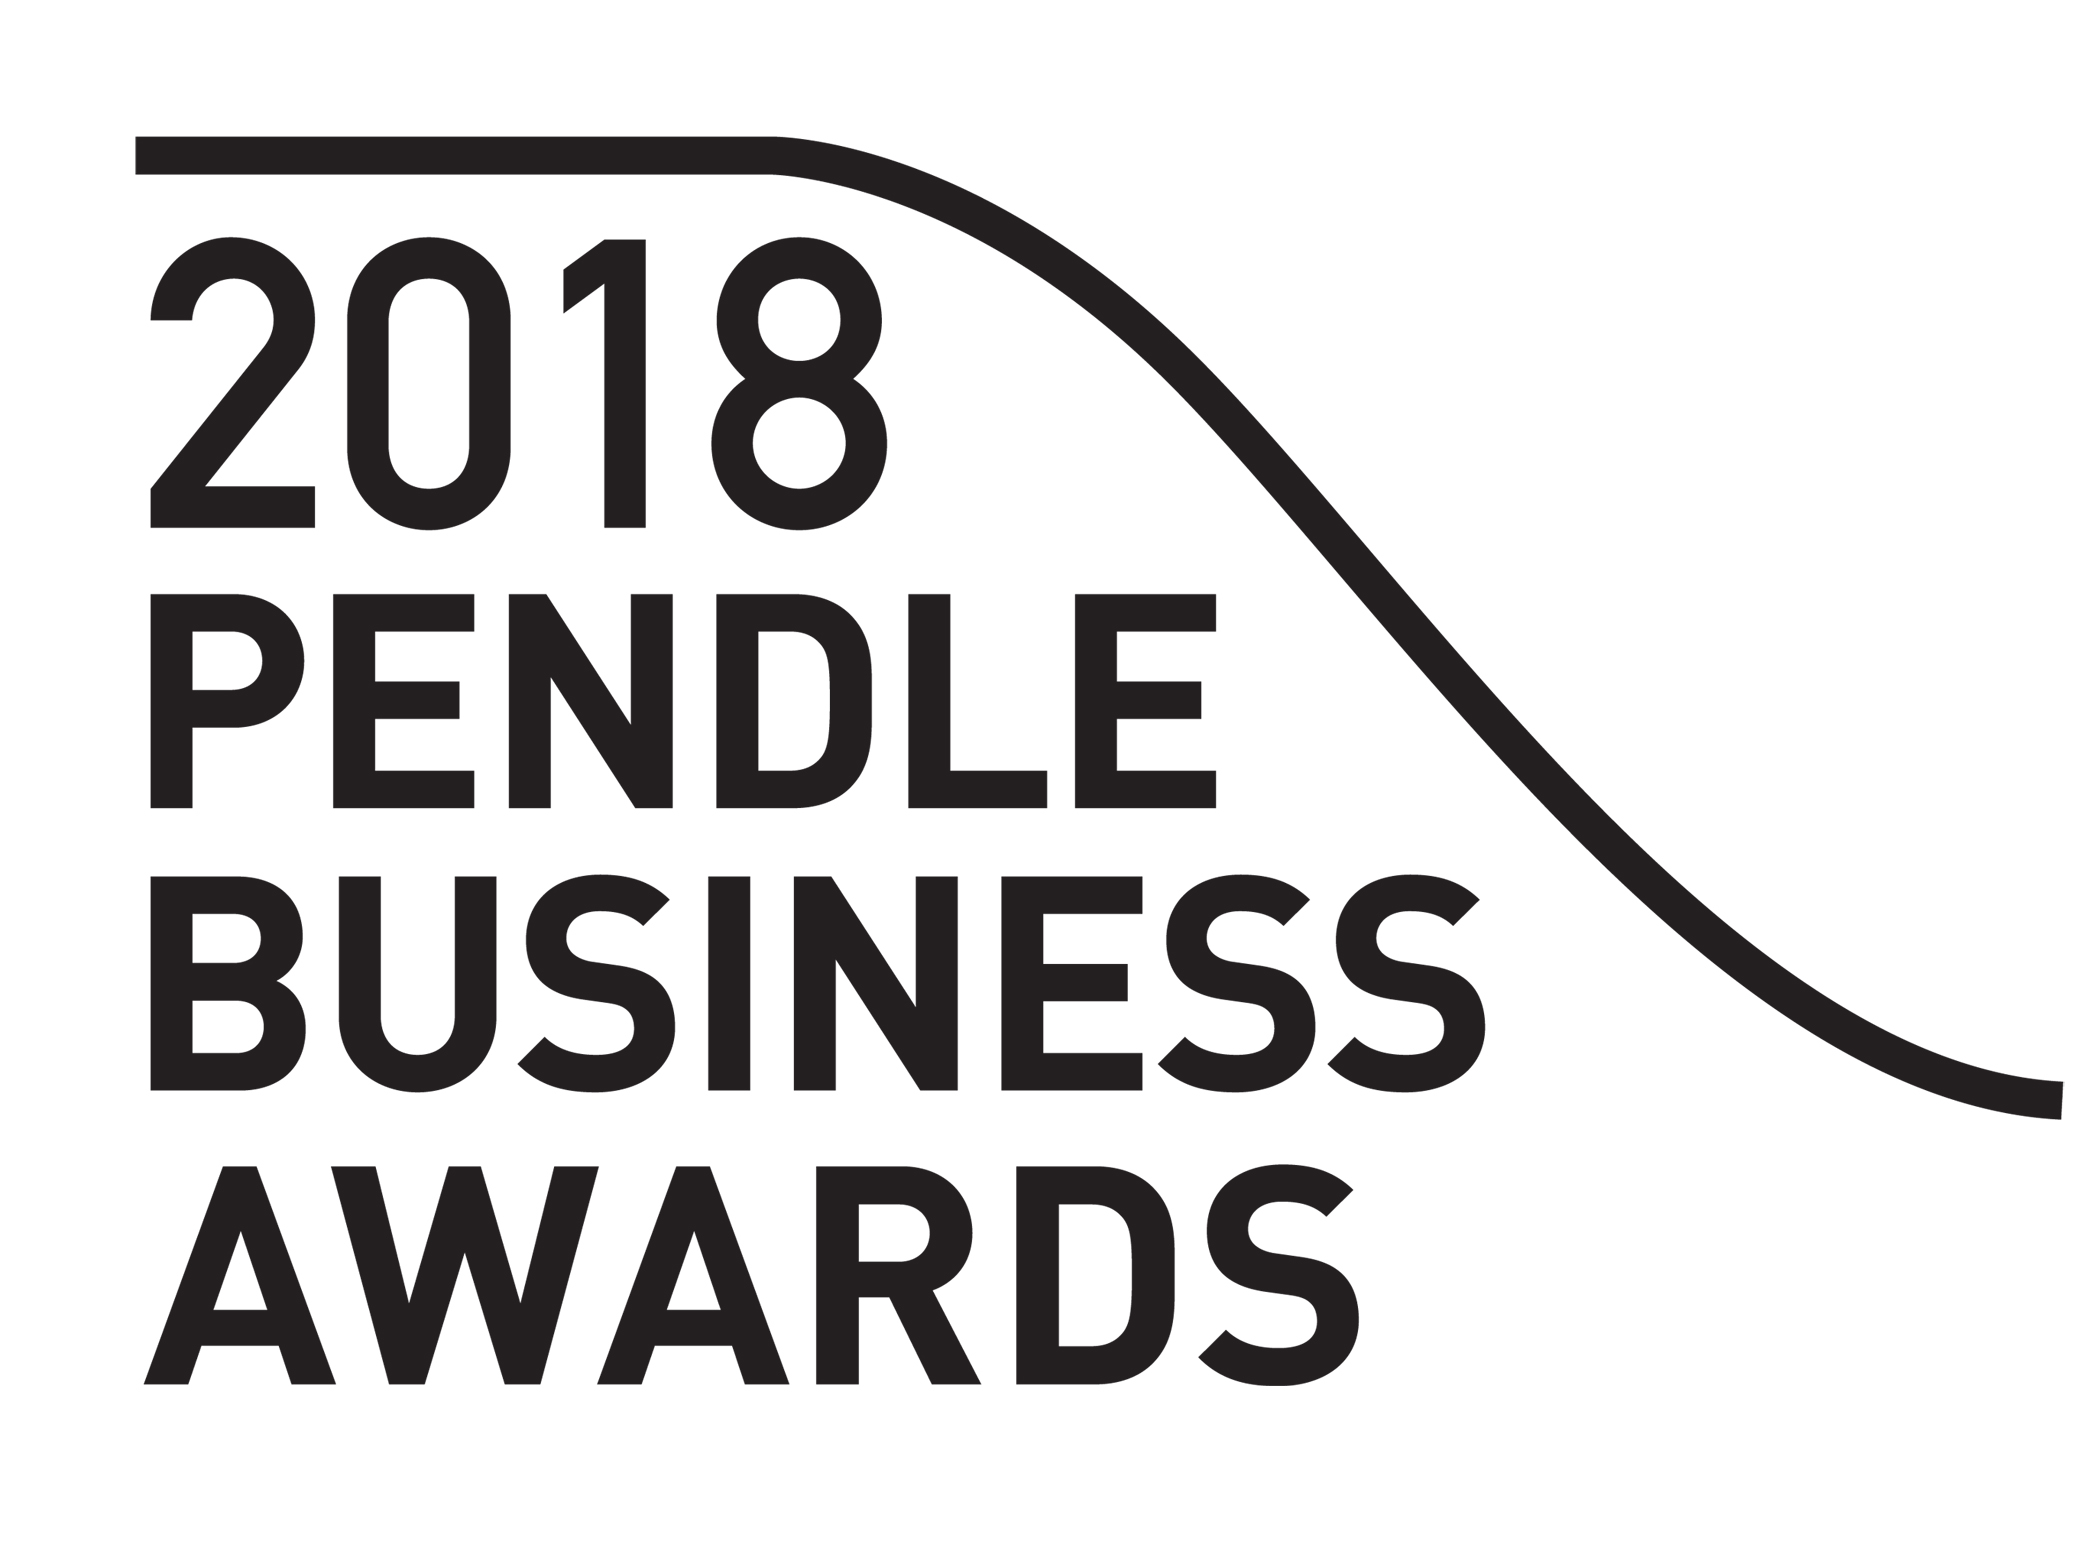 Pendle Business Awards is back for 2018 – enter now!